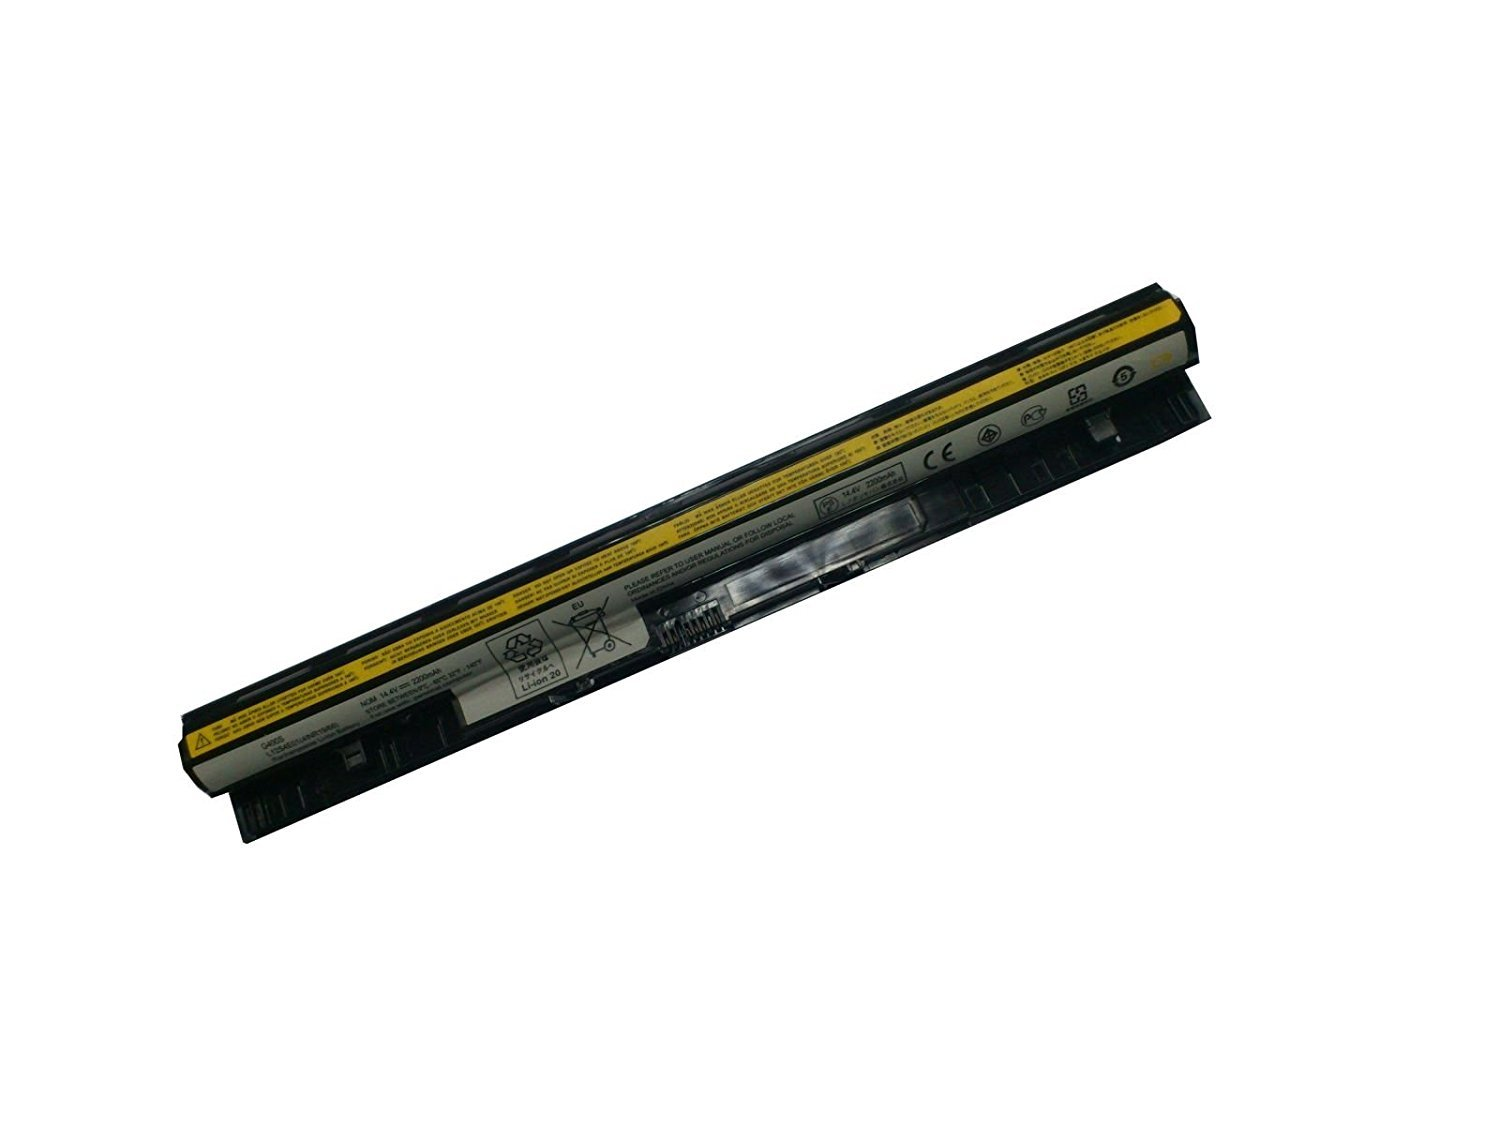 Powerforlaptop Laptop/Notebook Replace Battery for Lenovo IdeaPad G40 G50 G400S G405S G500S G505S G510S S410P S510P Z710 Touch Z710 L12L4E01 L12S4E01 L12M4A02 L12S4A02 L12L4A02